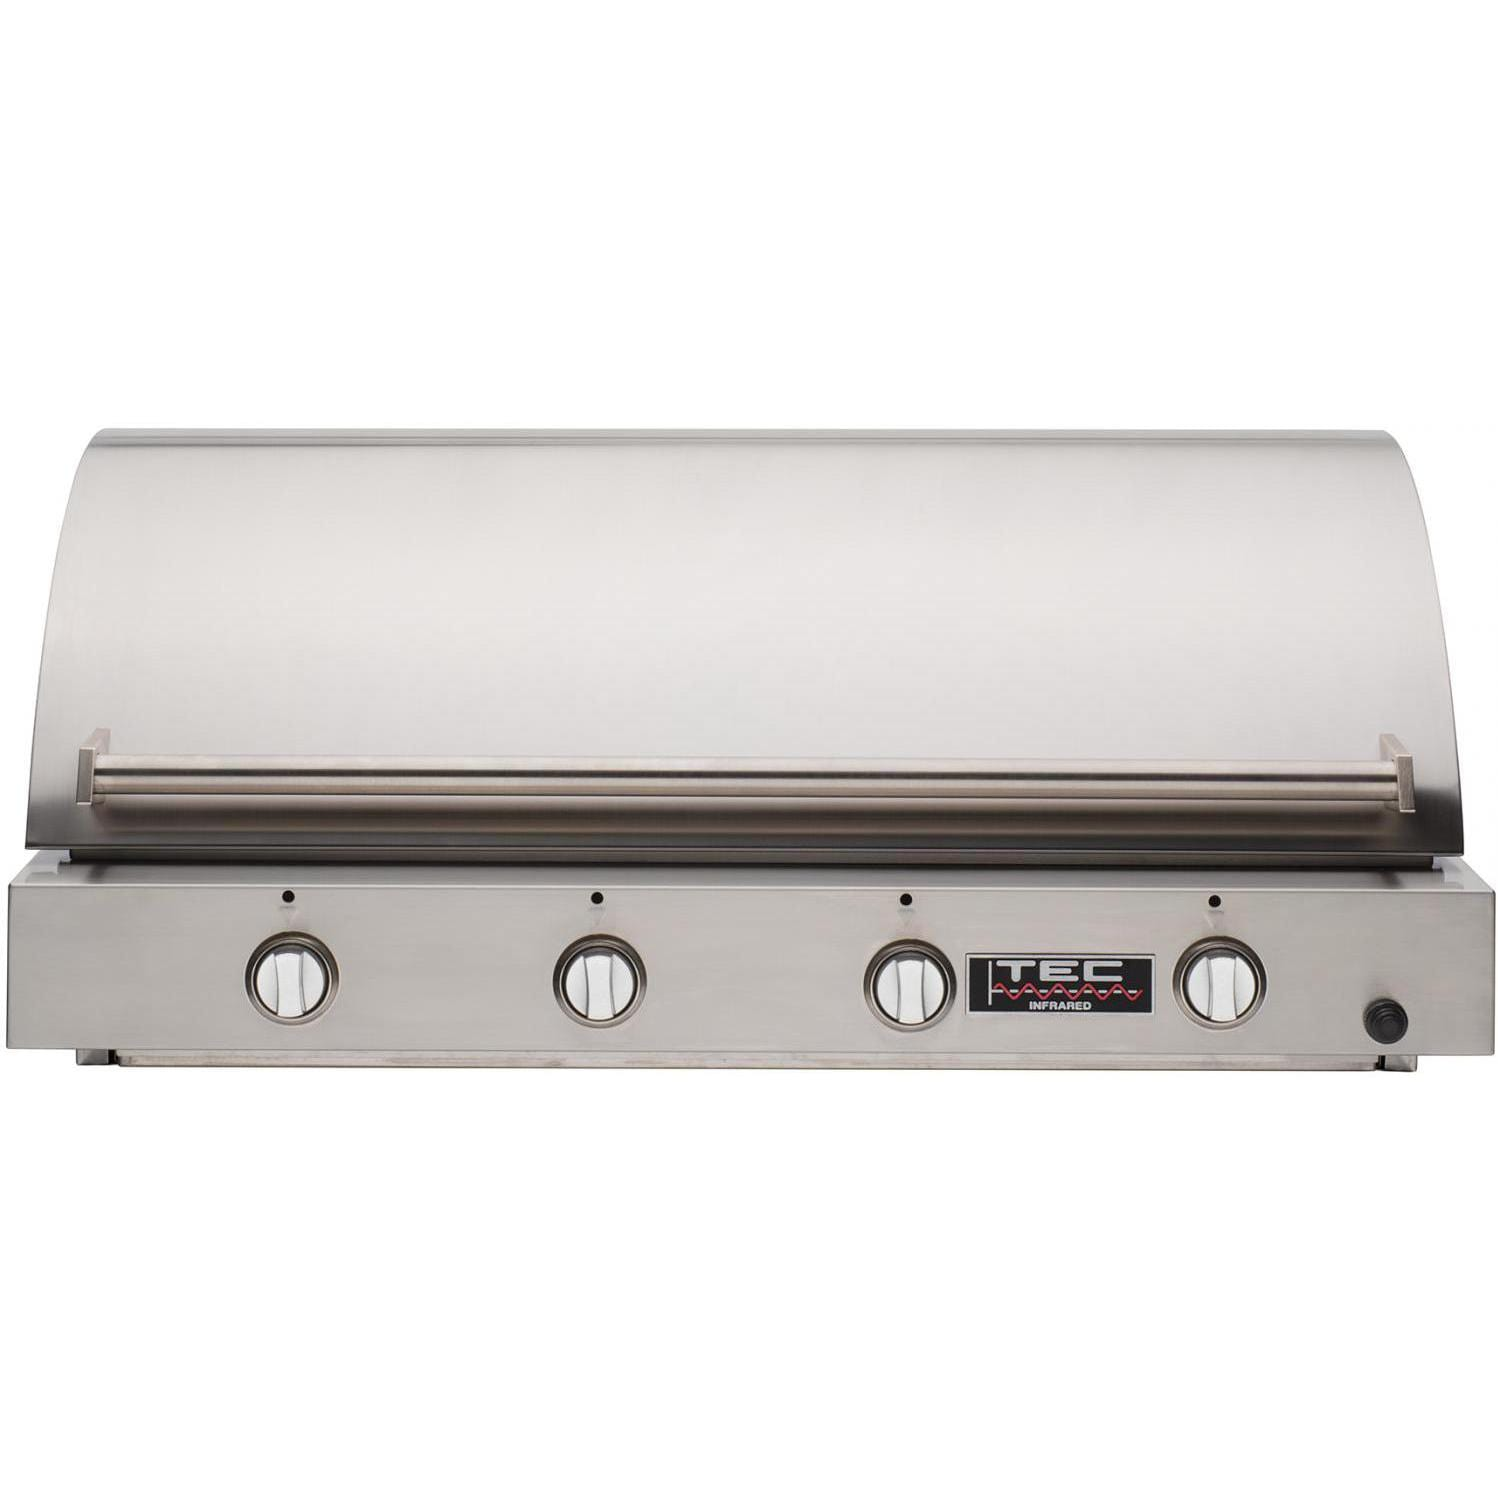 TEC Sterling G4000 FR 46-Inch Infrared Propane Gas Grill